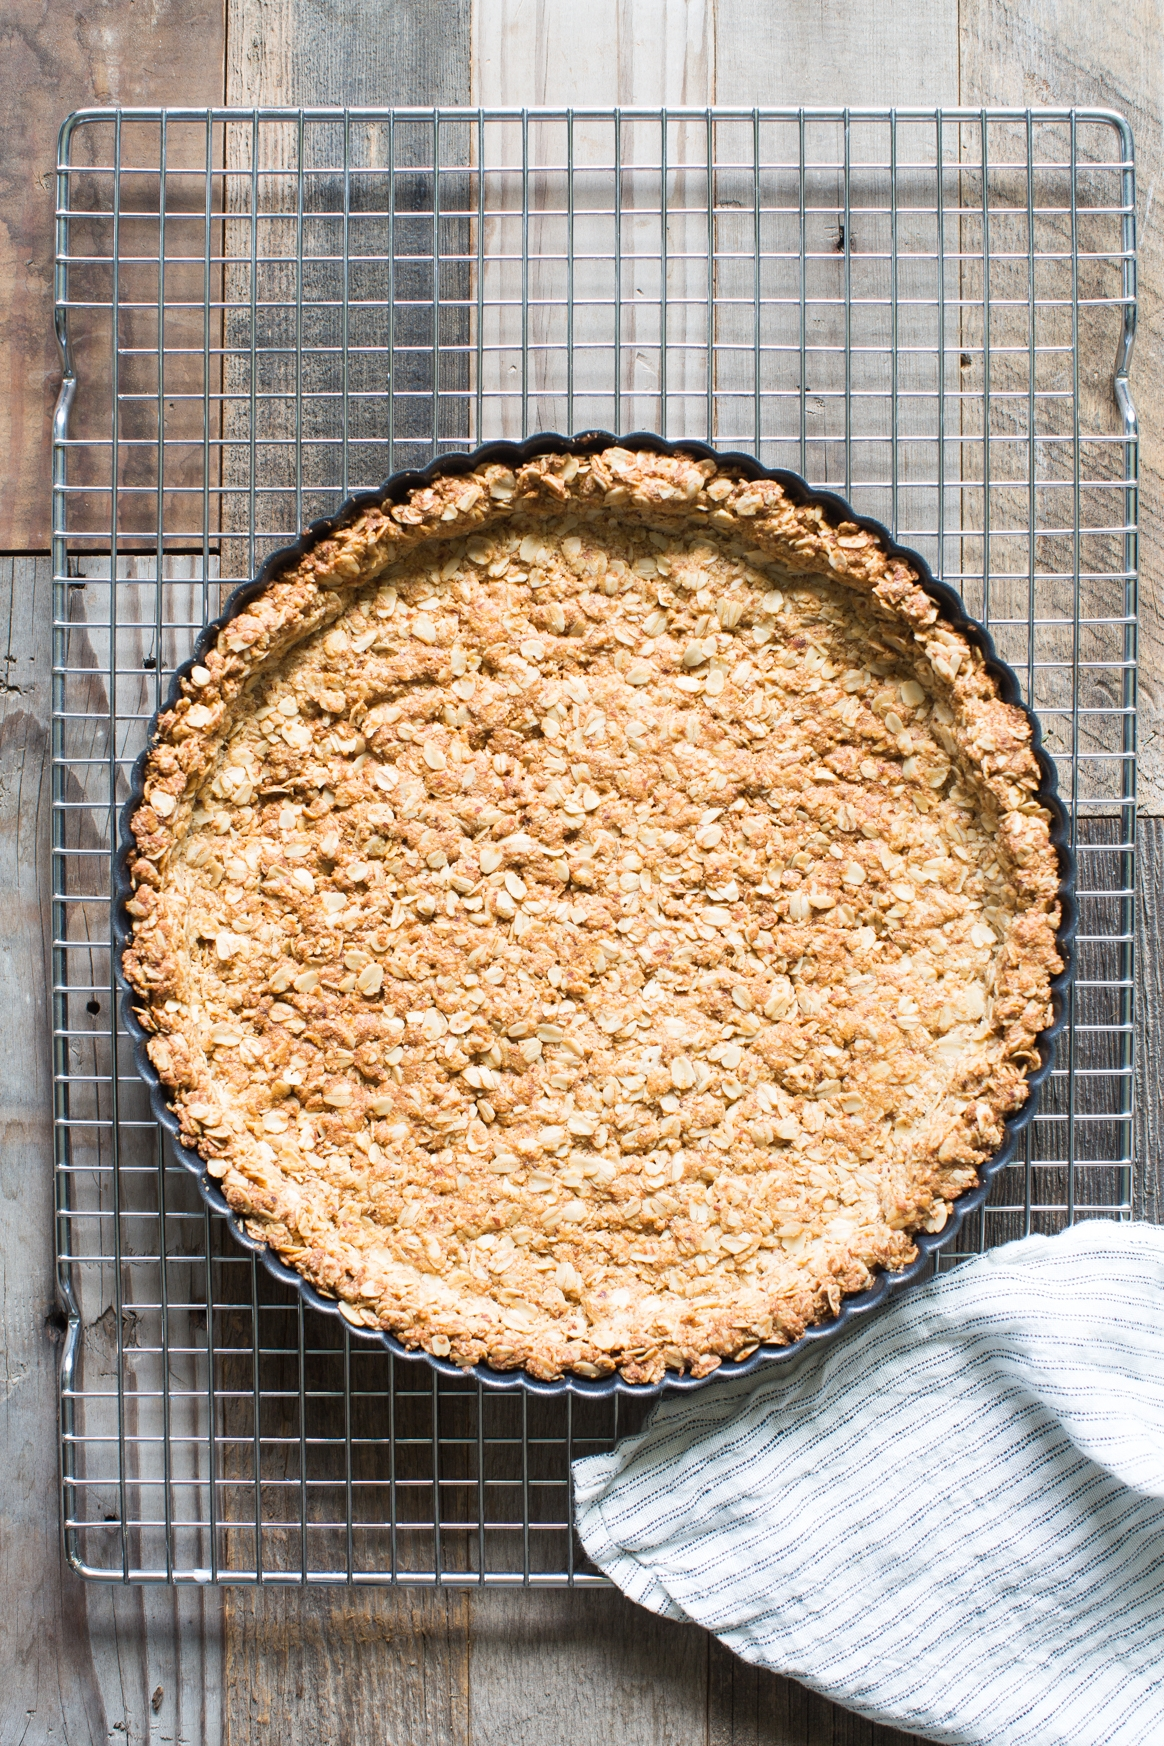 Almond, Oat and Honey Crust